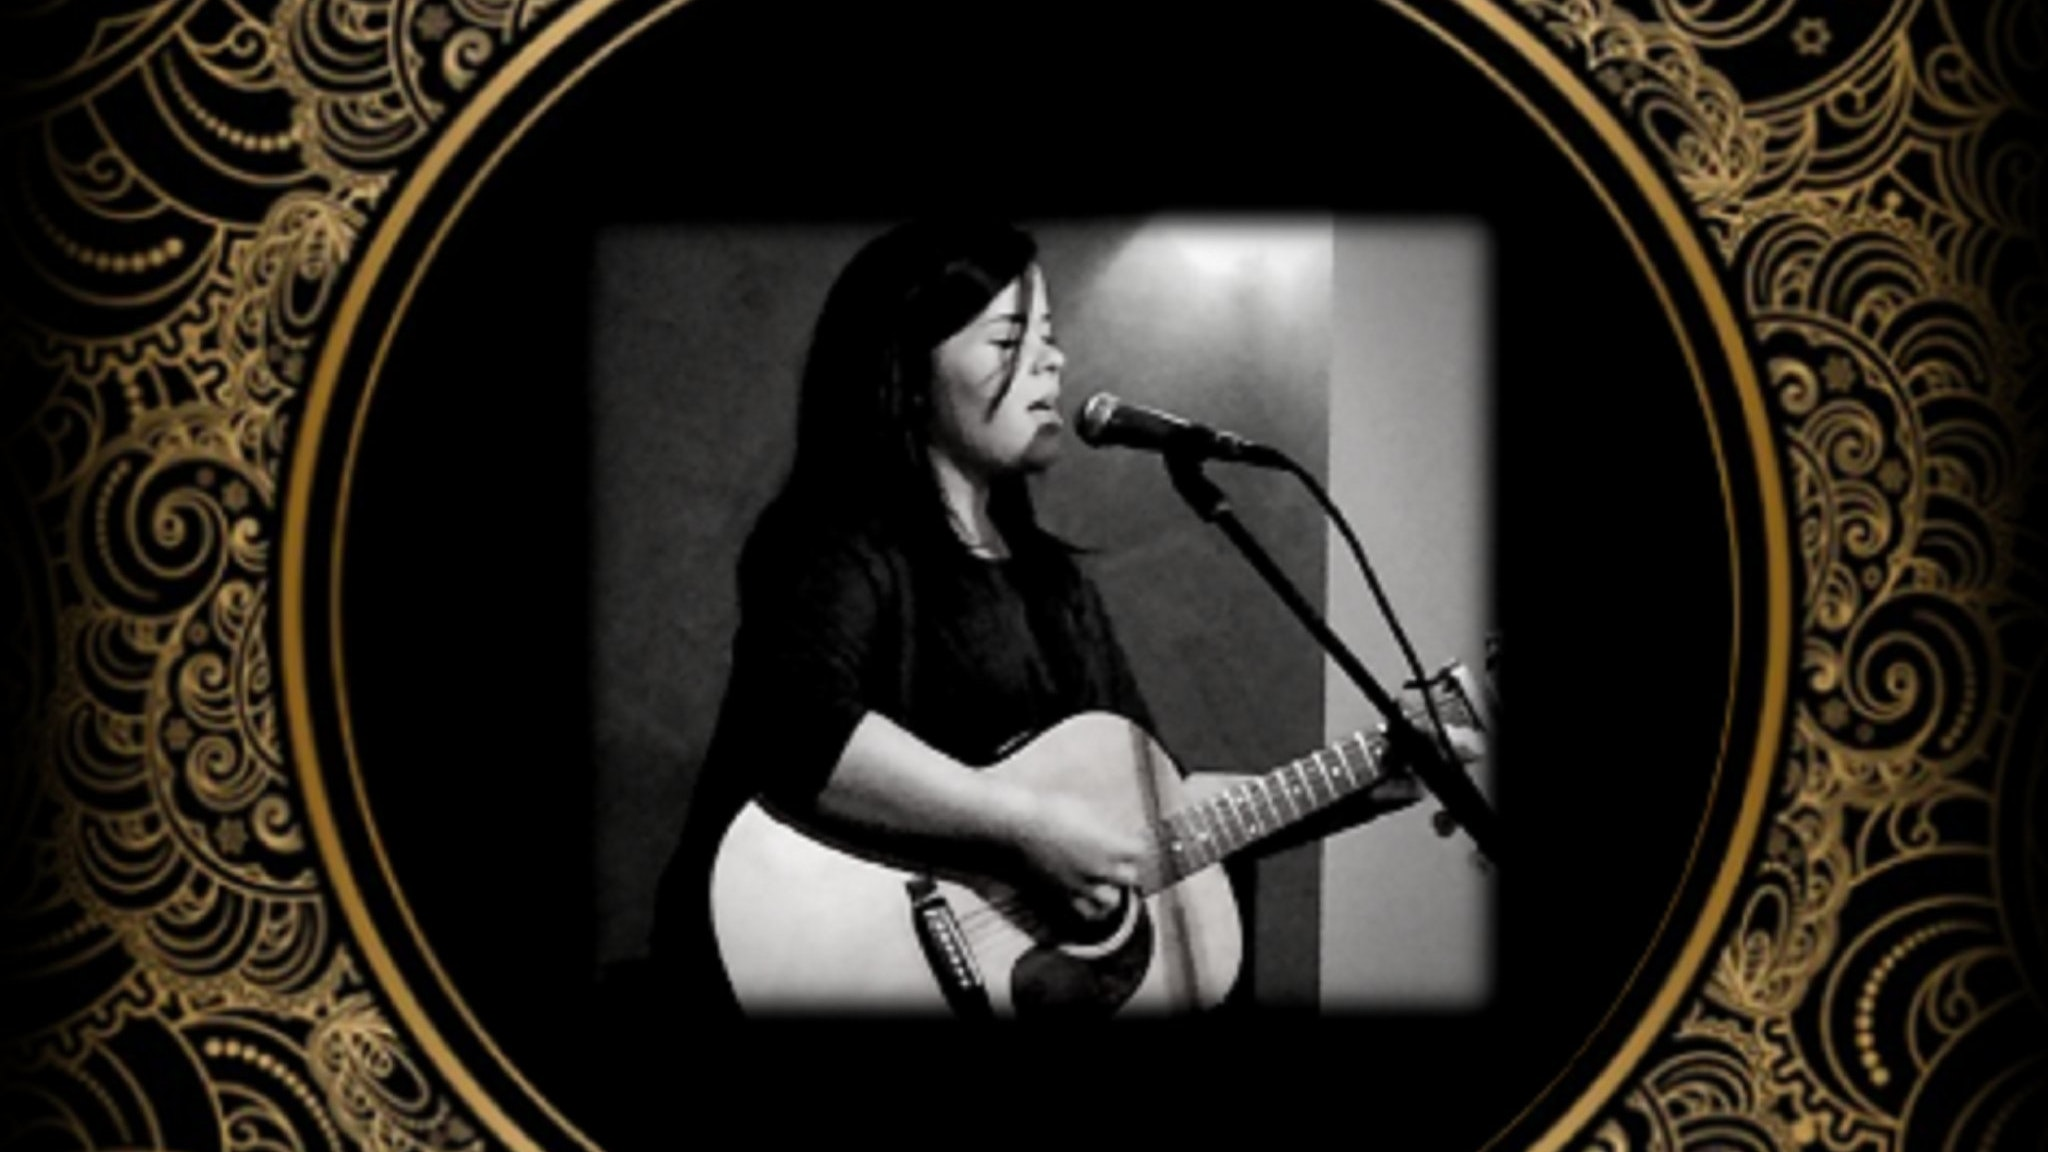 Emma Fenby performs at Herd Bar & Grill